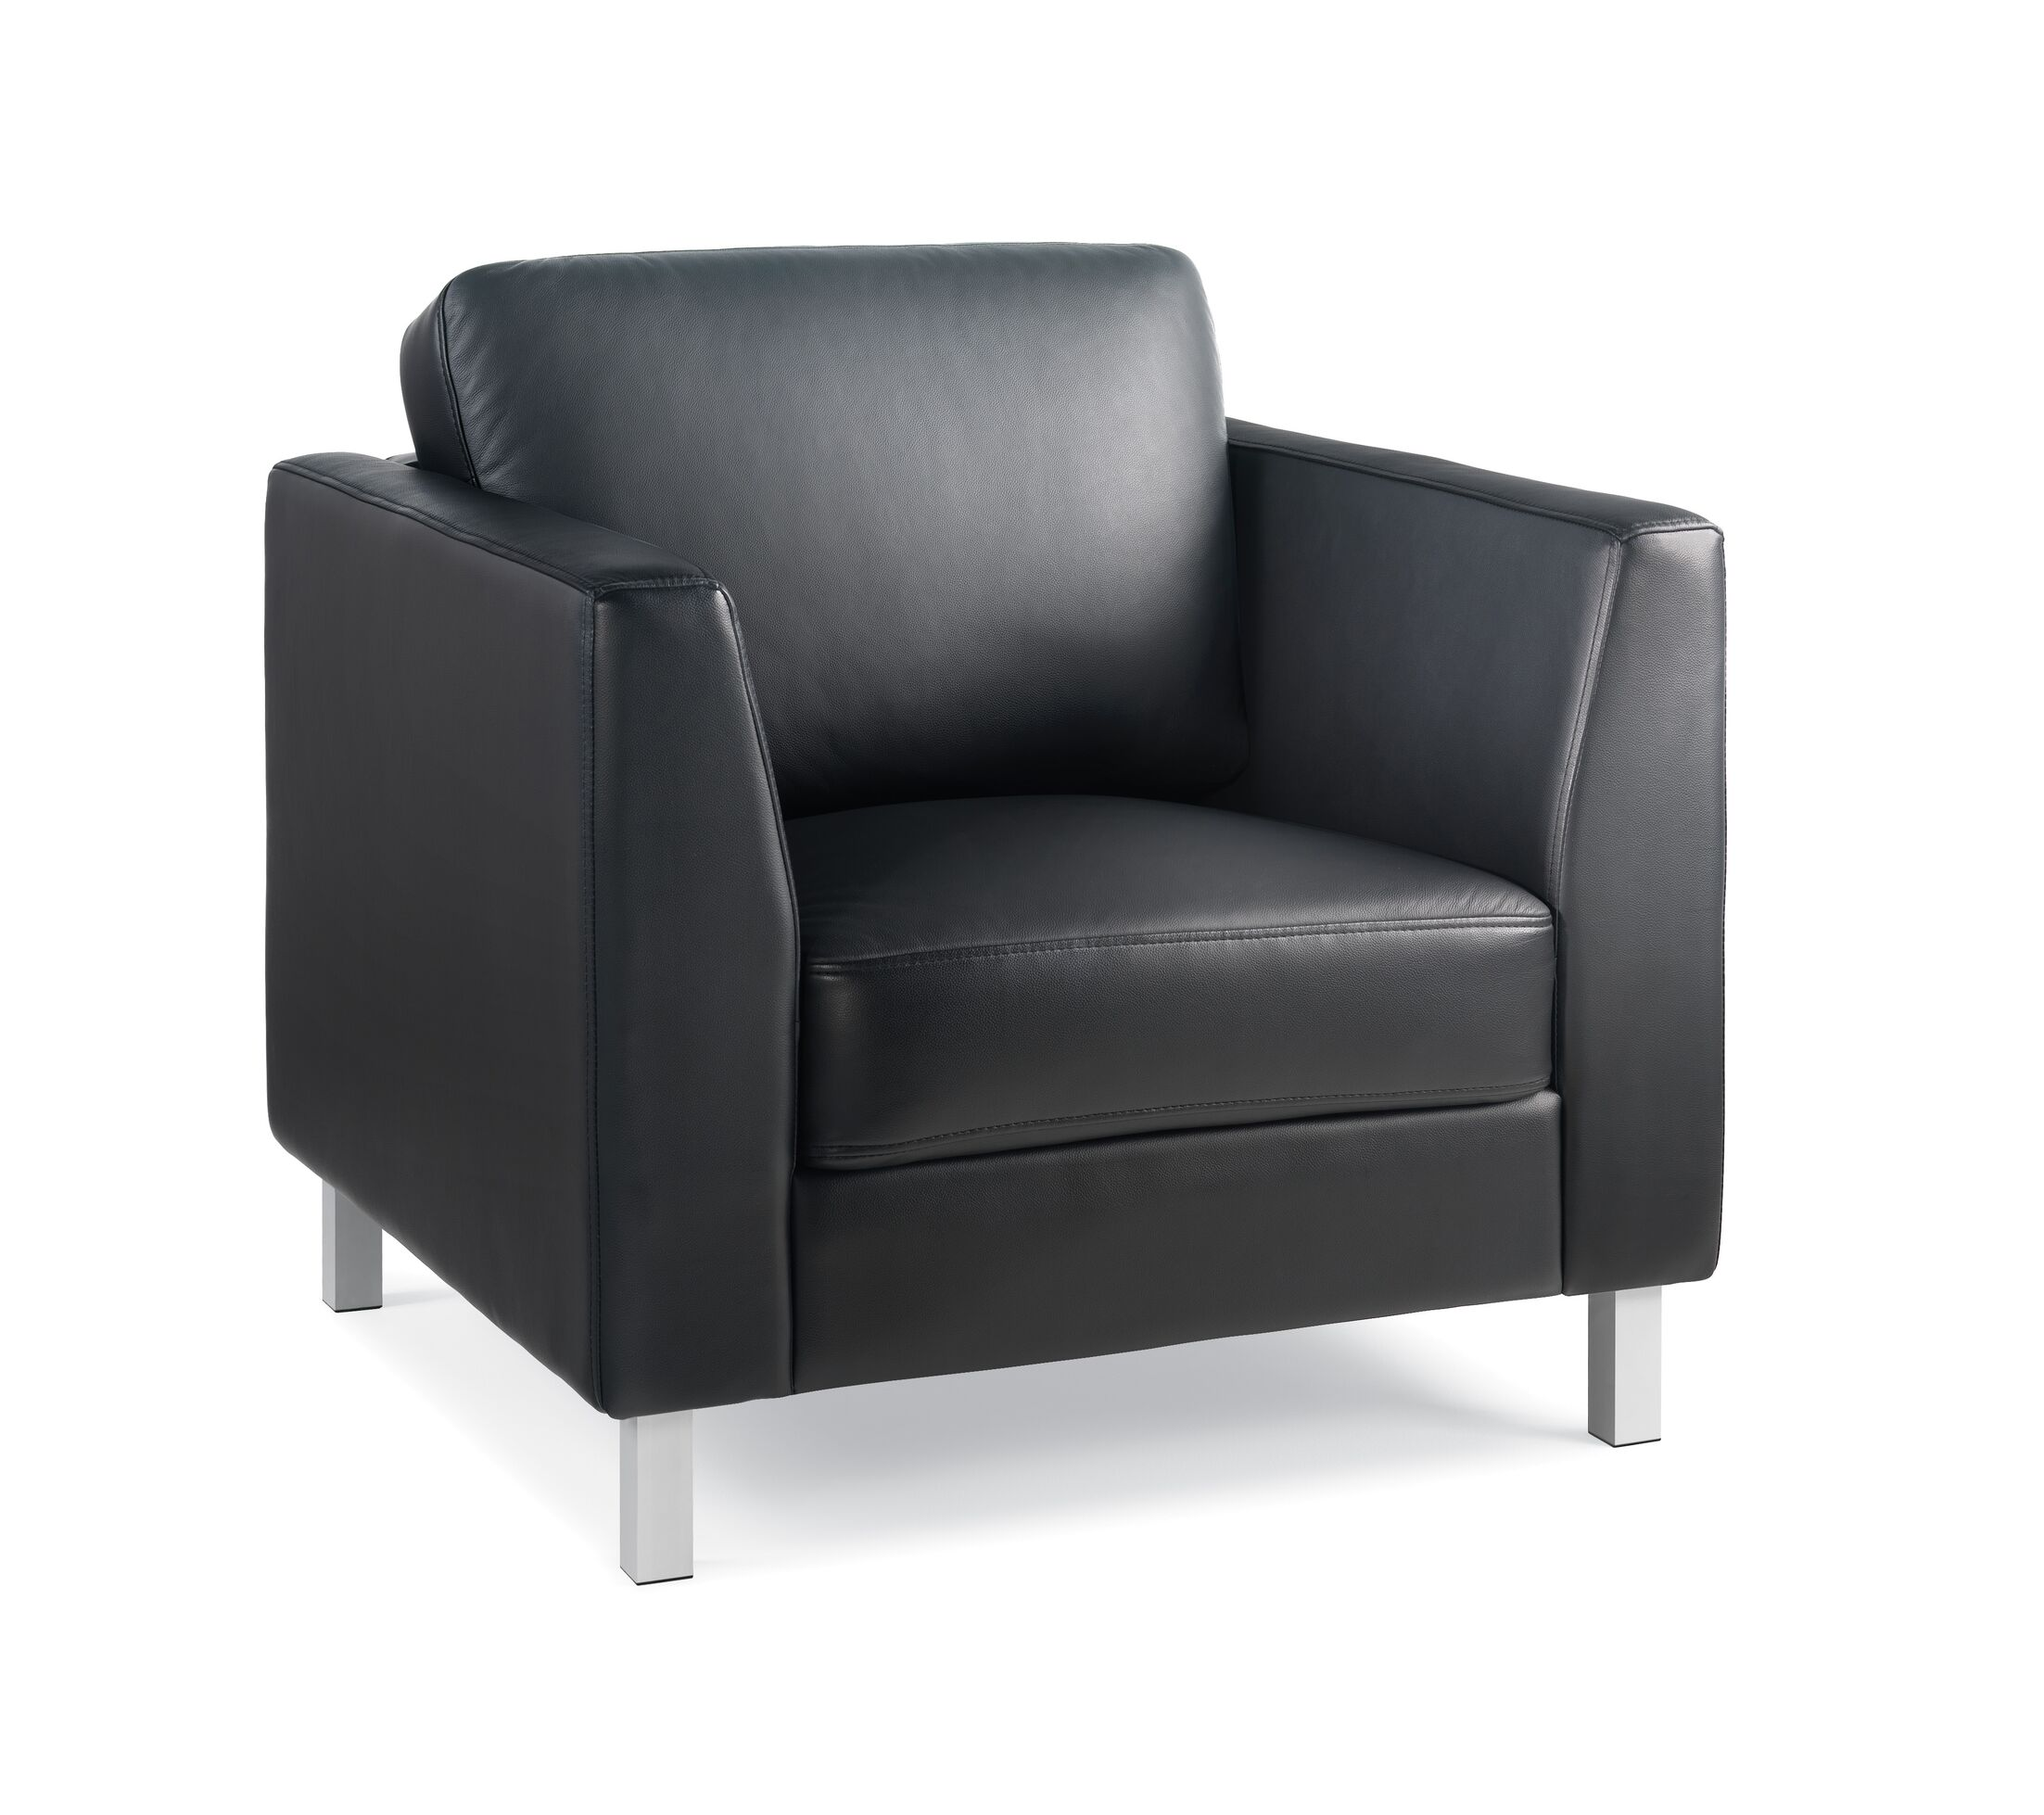 Lincoln Leather Lounge Chair Leather Color: Turnstone Leather - Black